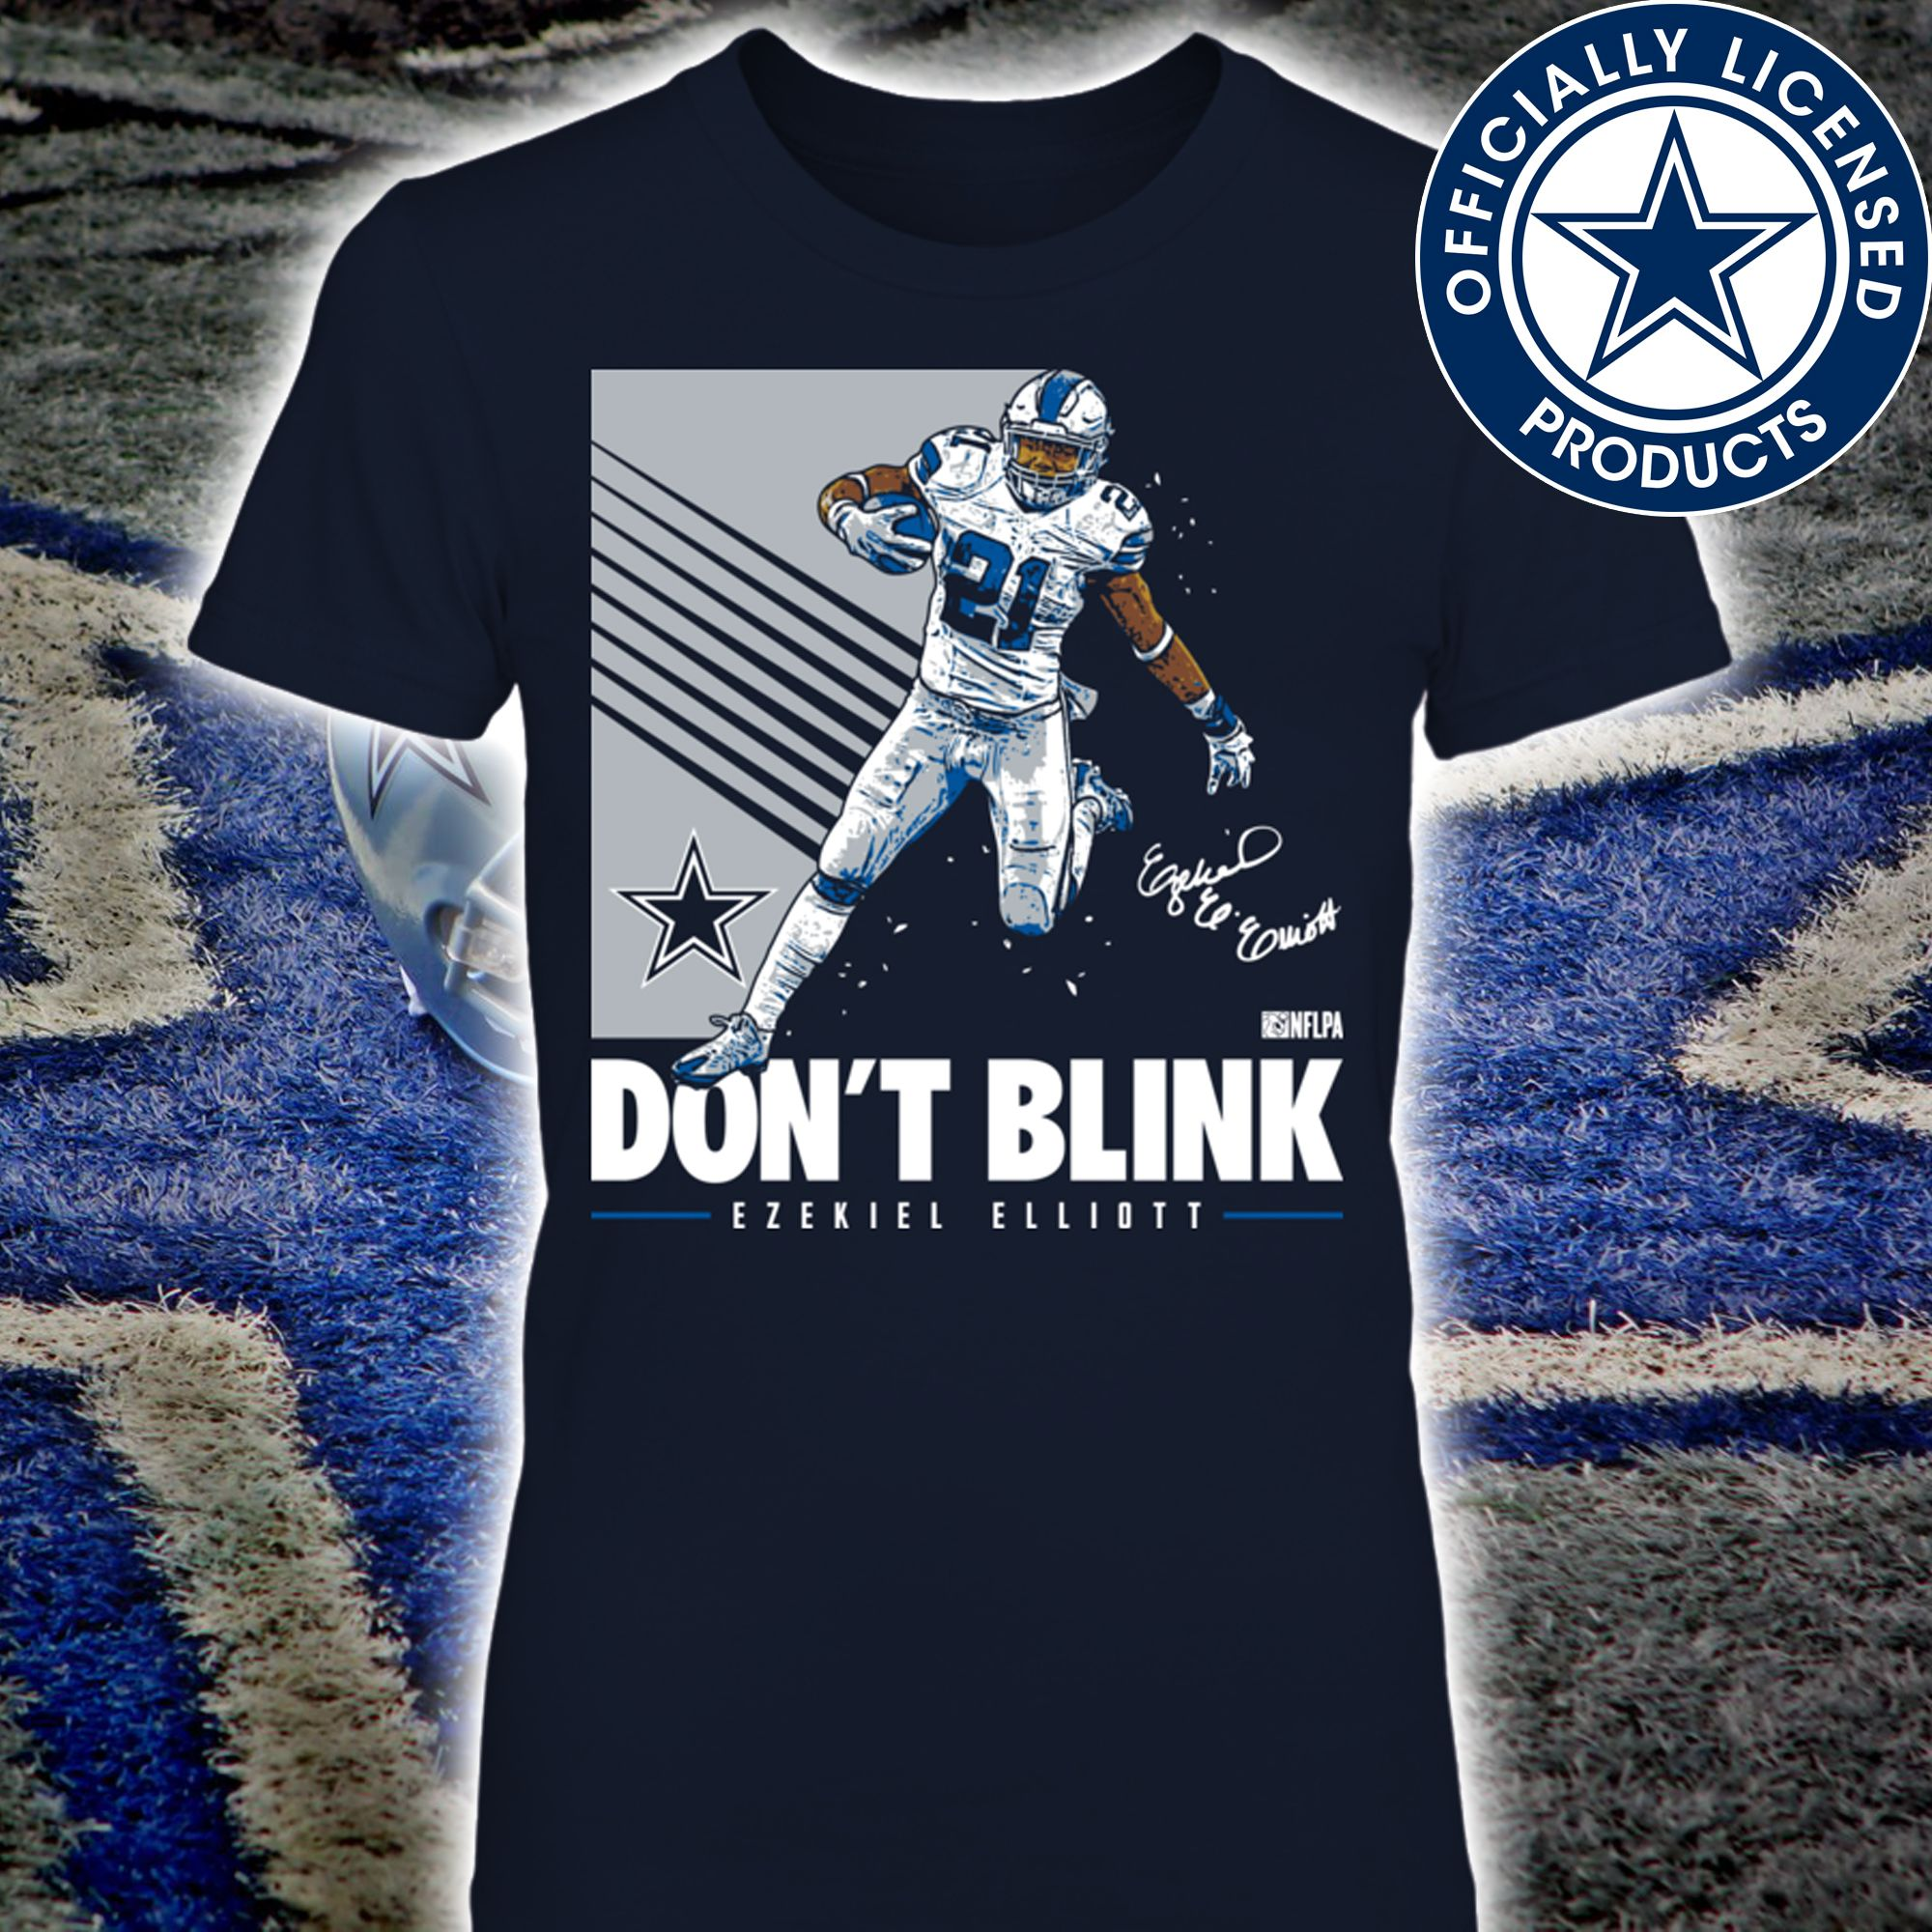 new arrival fdfed 86130 Ezekiel Elliott Official Apparel - this licensed gear is the ...